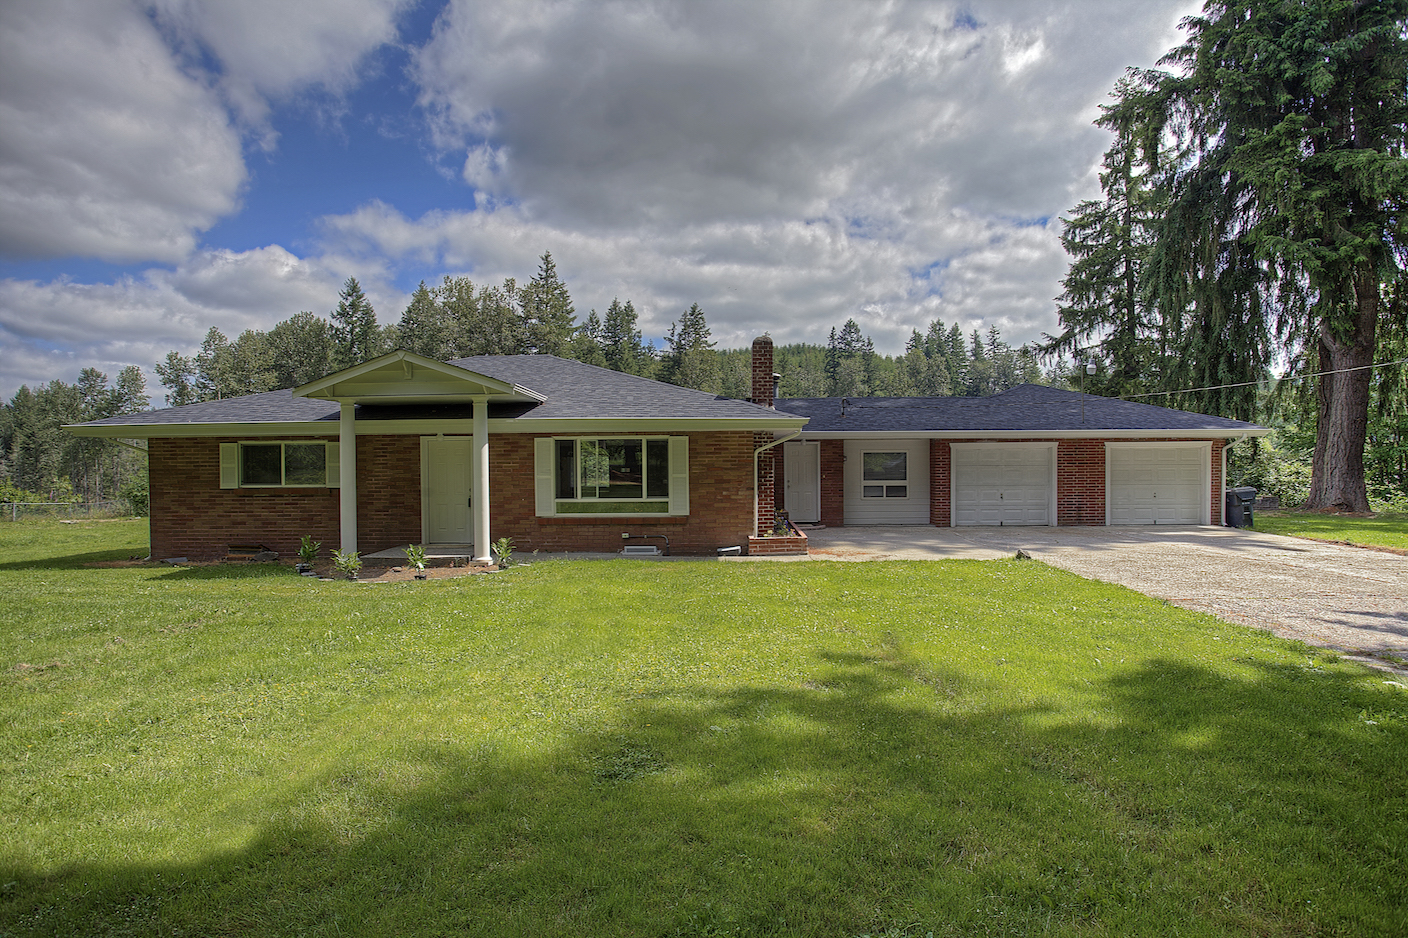 28311 Orville Rd E, Orting, WA - USA (photo 1)